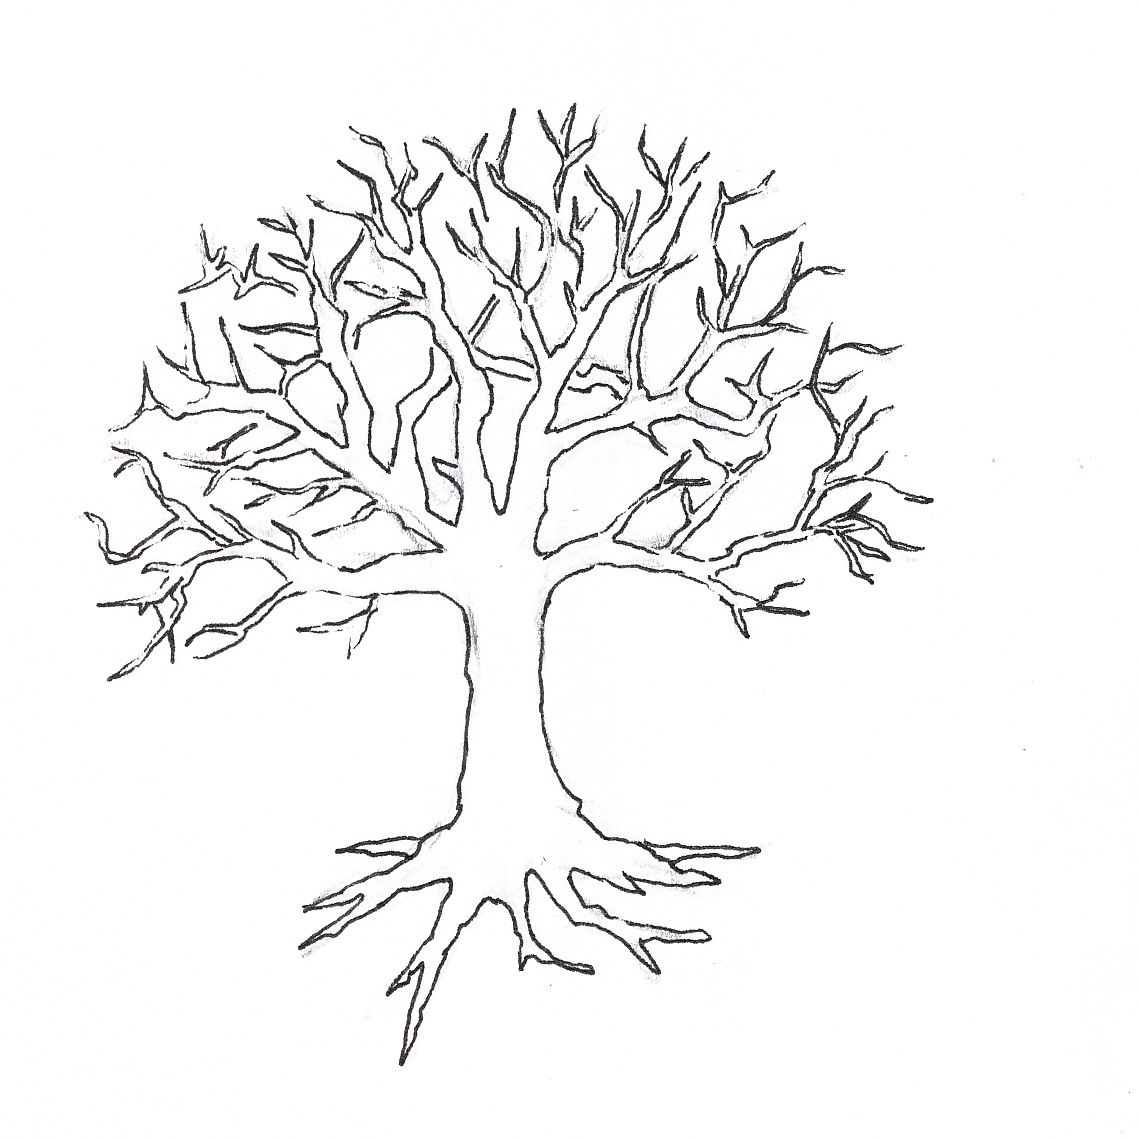 Tree Without Leaves Coloring Page To Print And Download For Kids For Kids